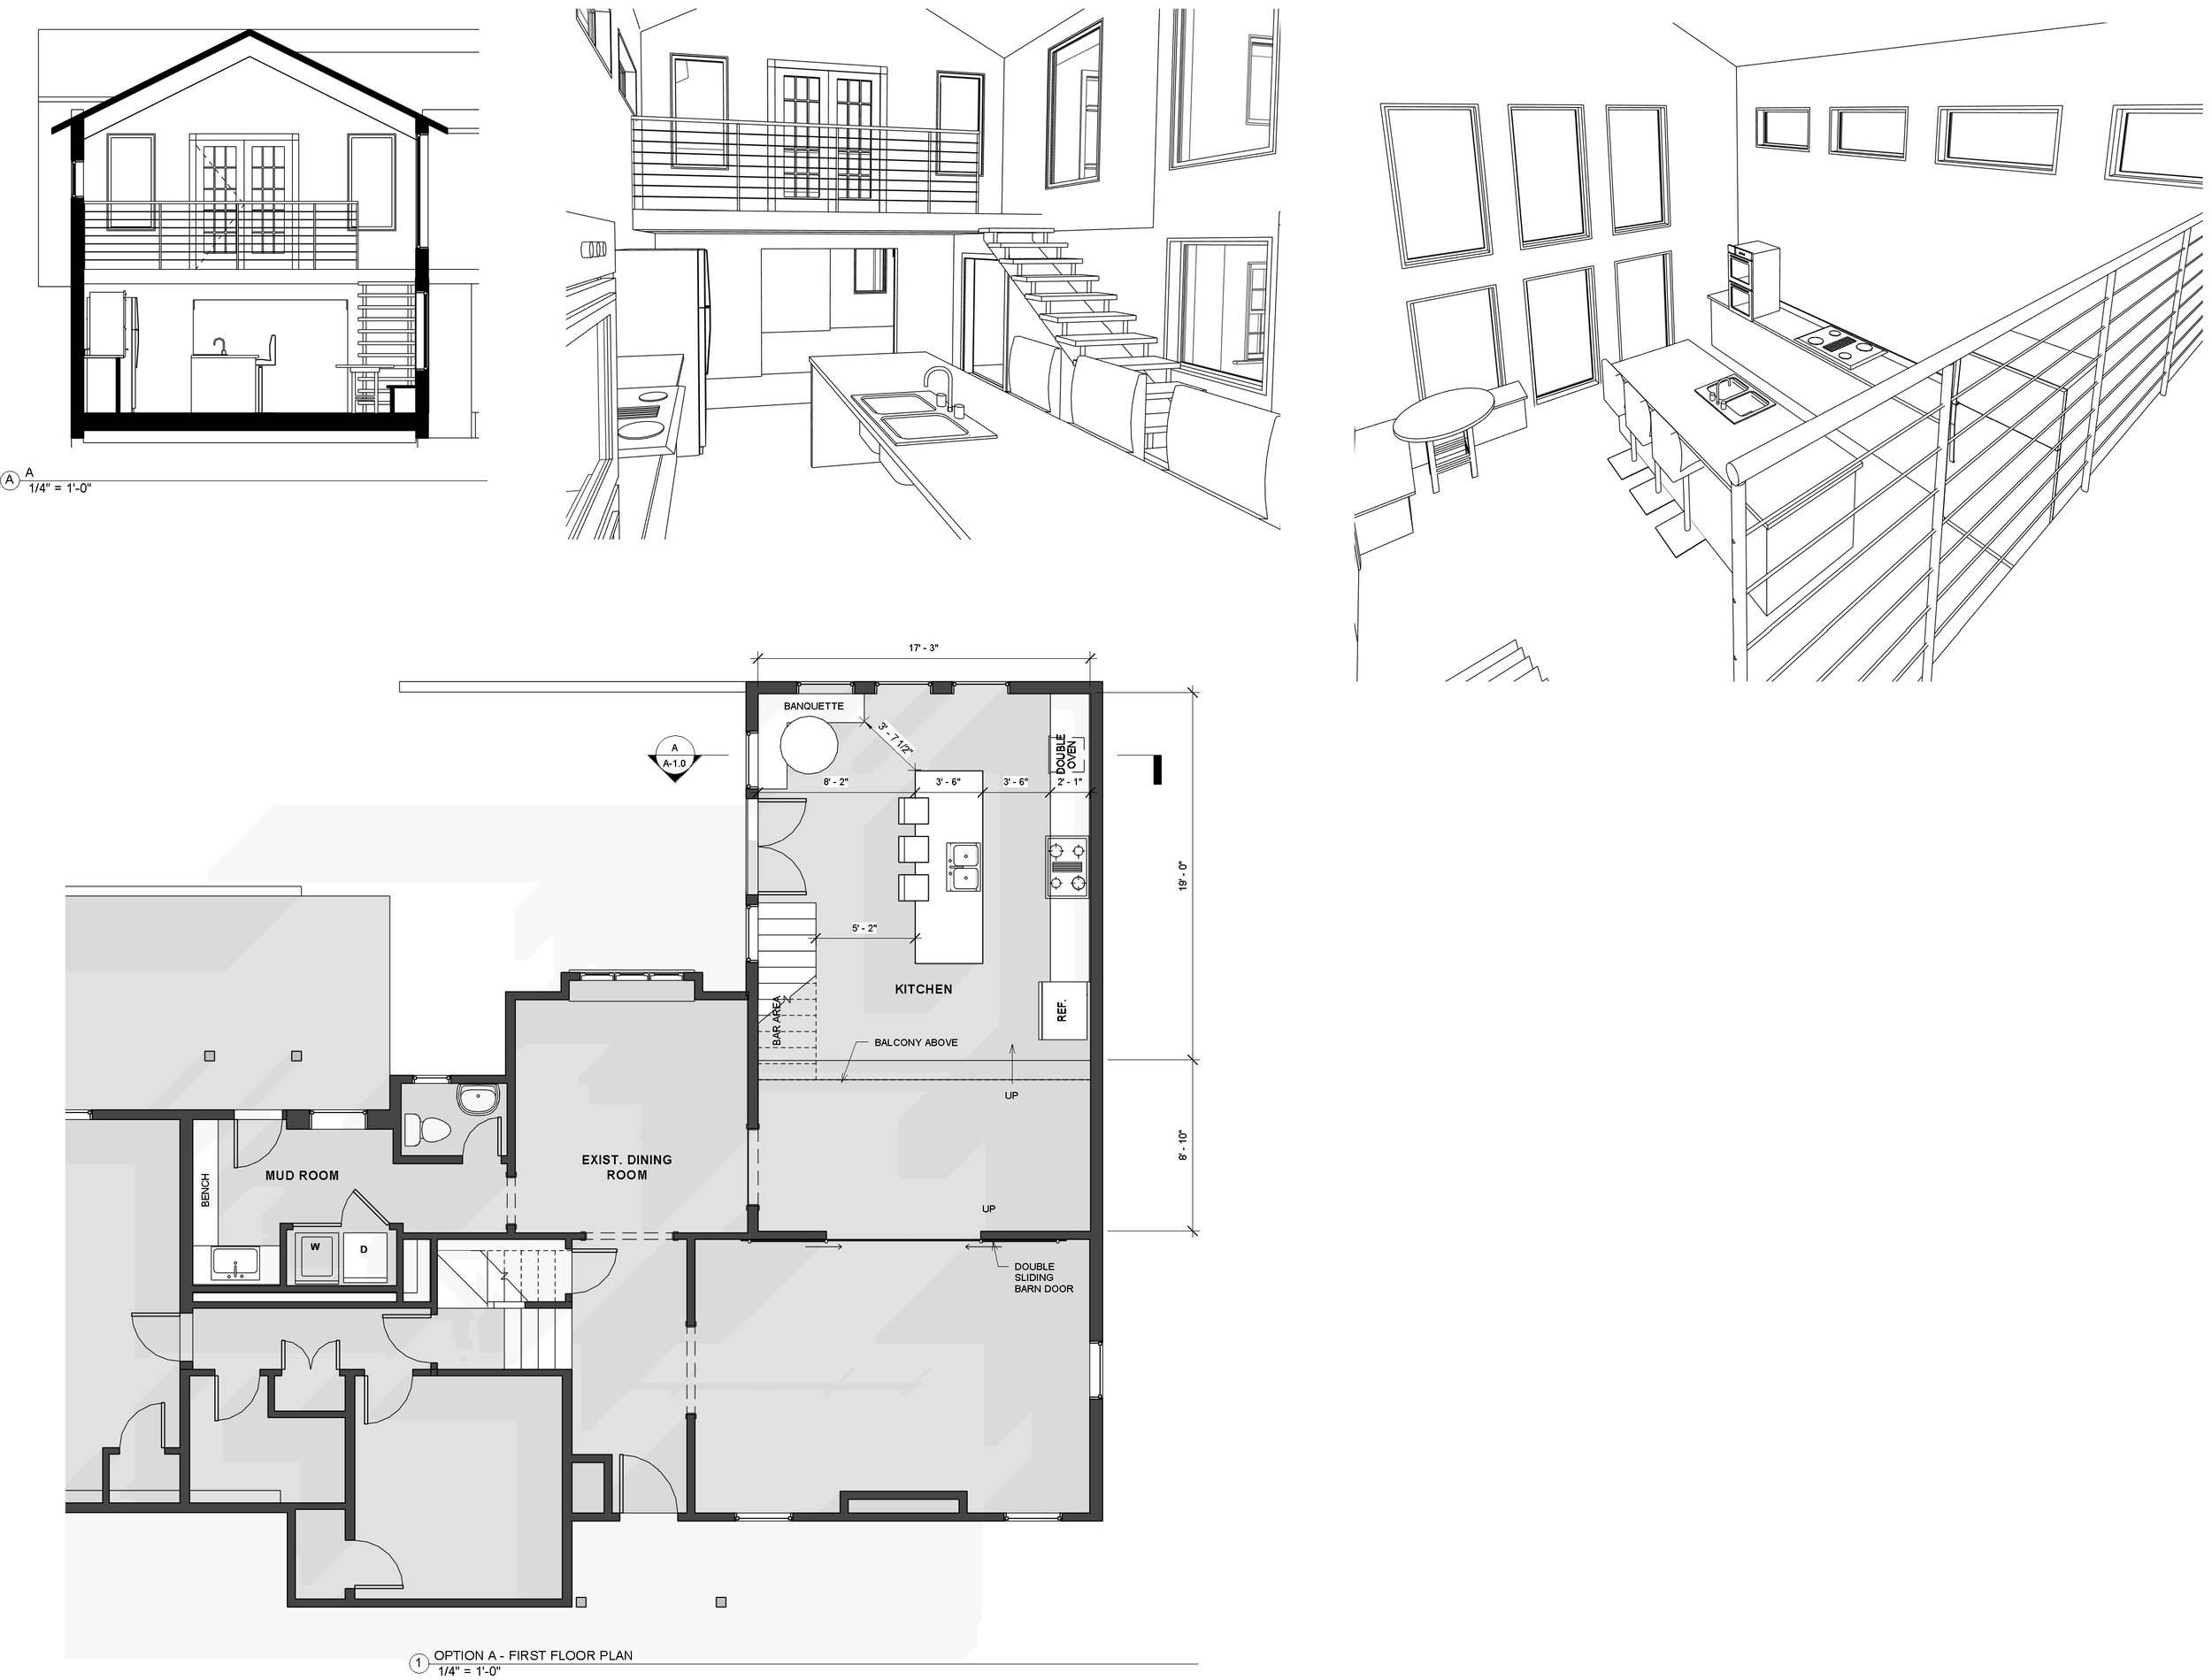 Example of a Schematic floor plan and a few 3D views